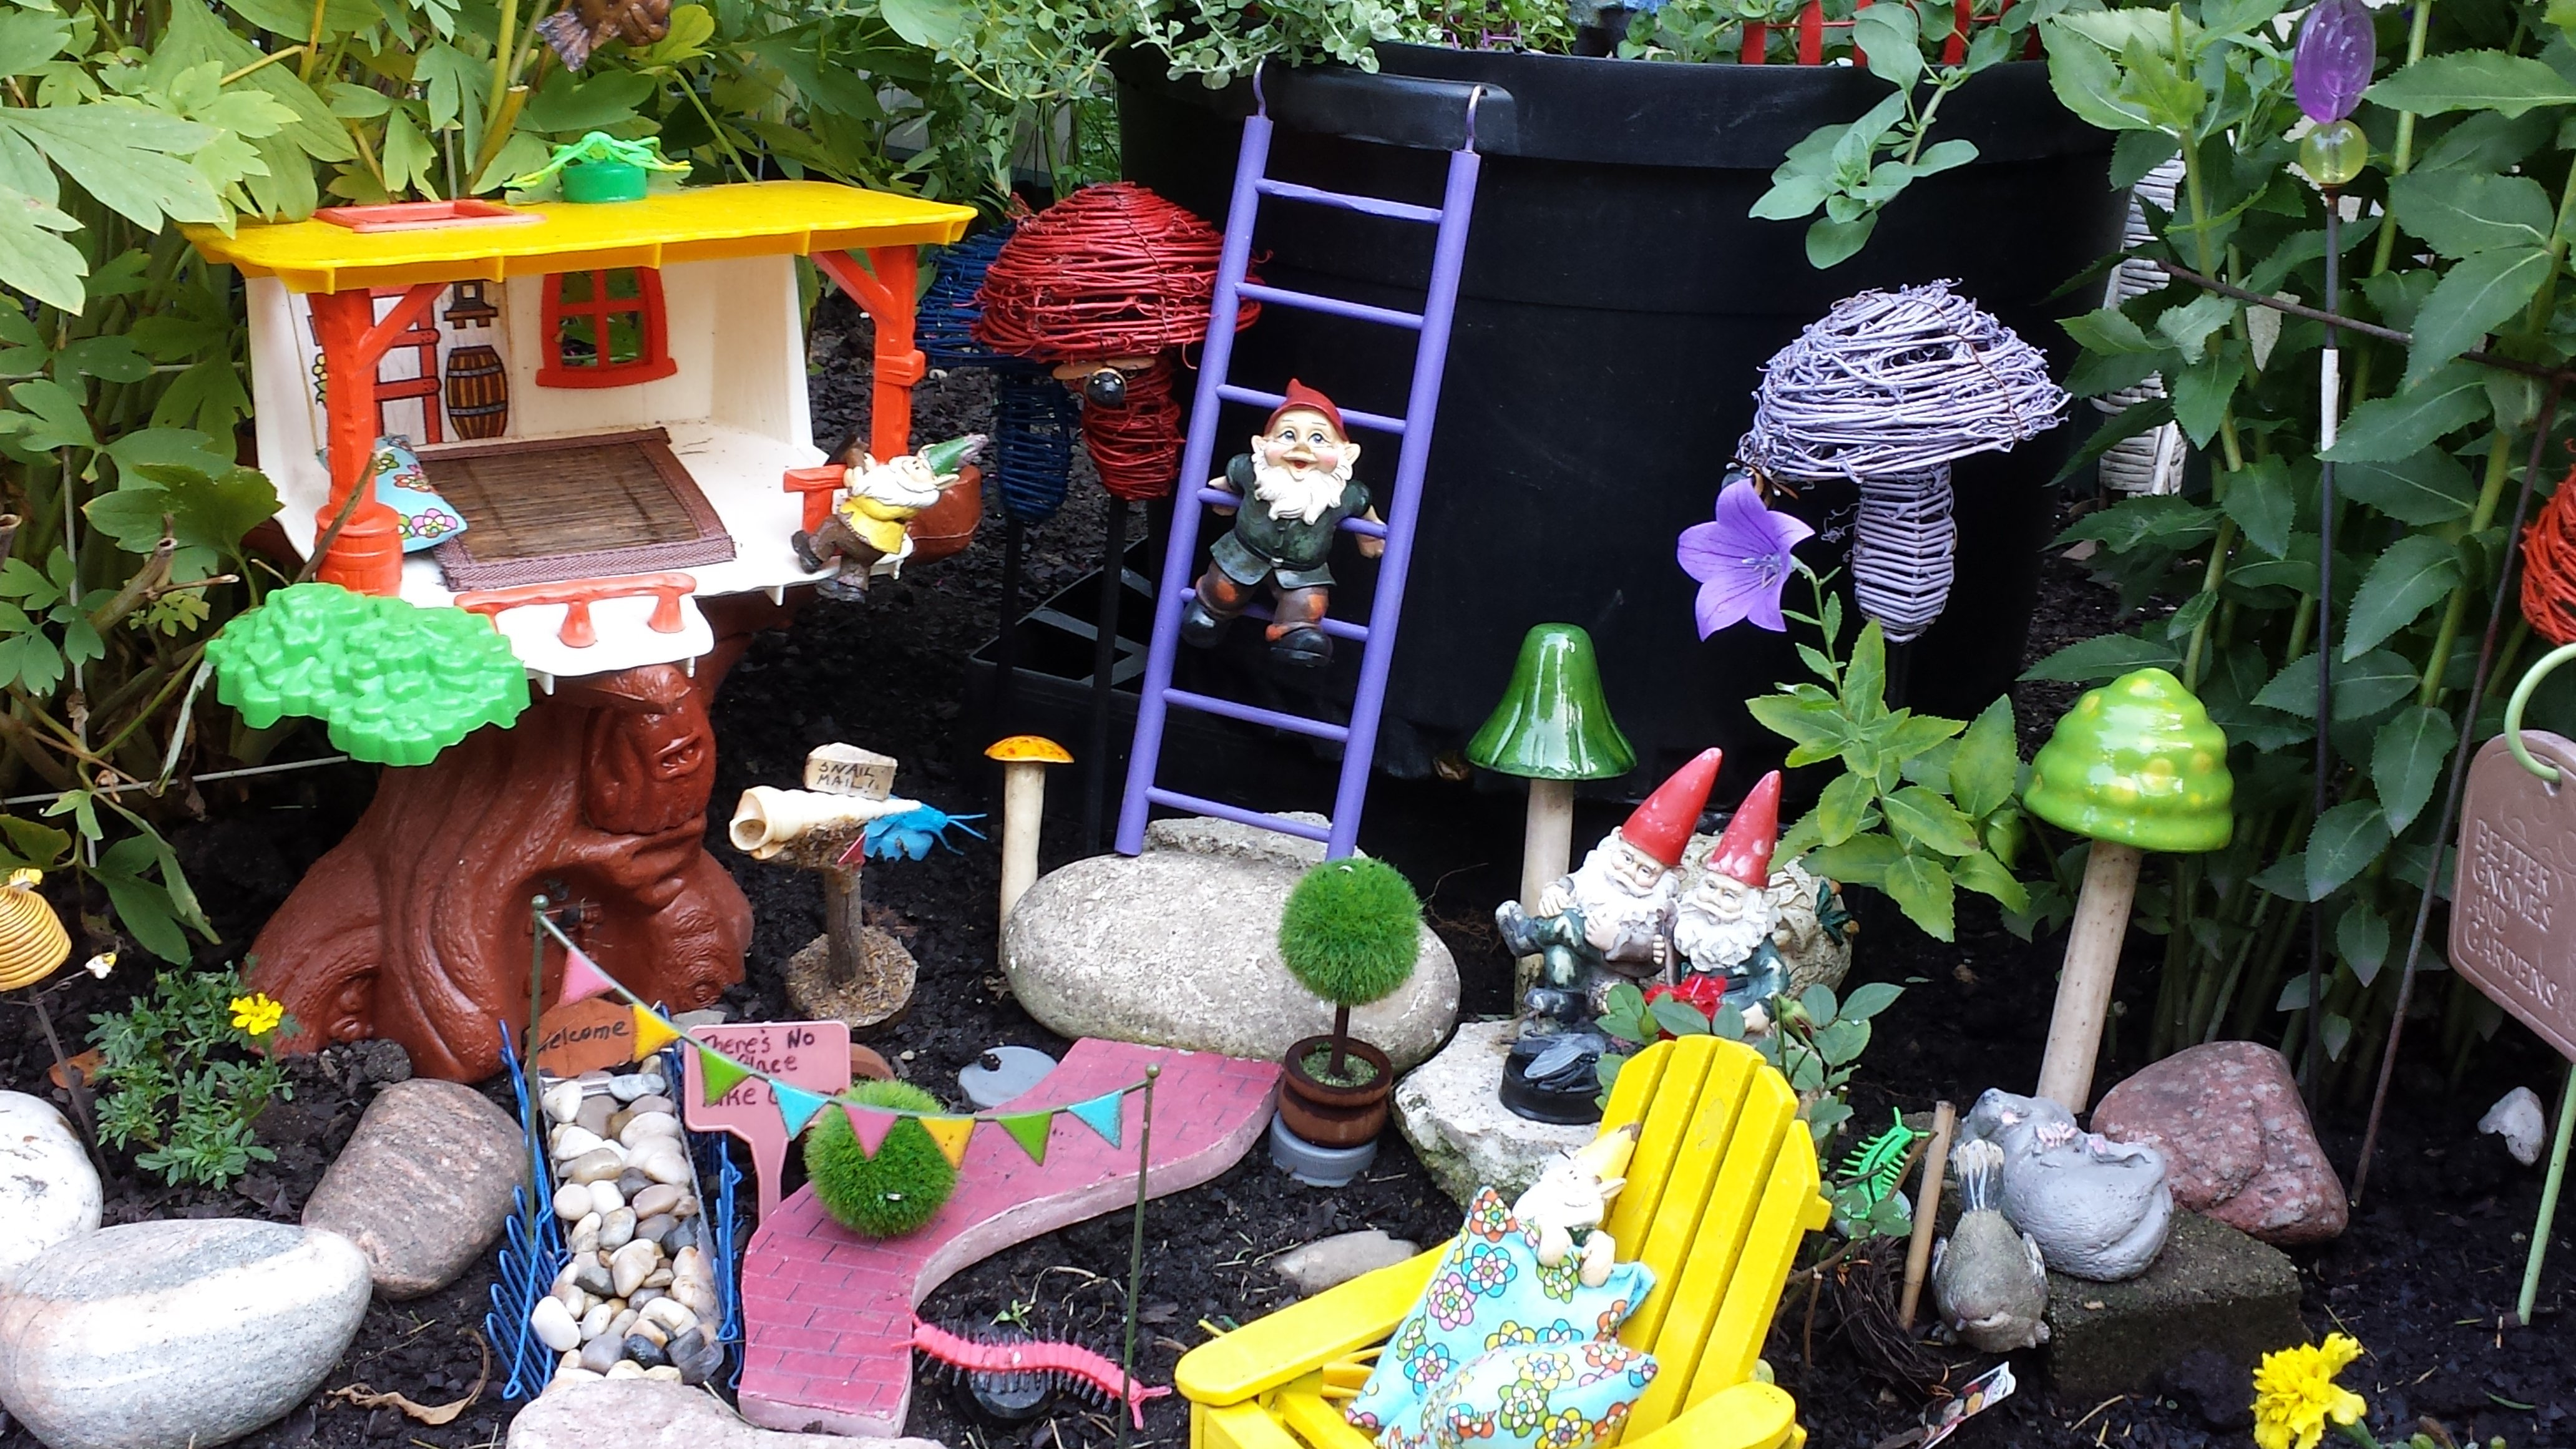 Gnome In Garden: Fairies And Gnomes Flower Garden Design